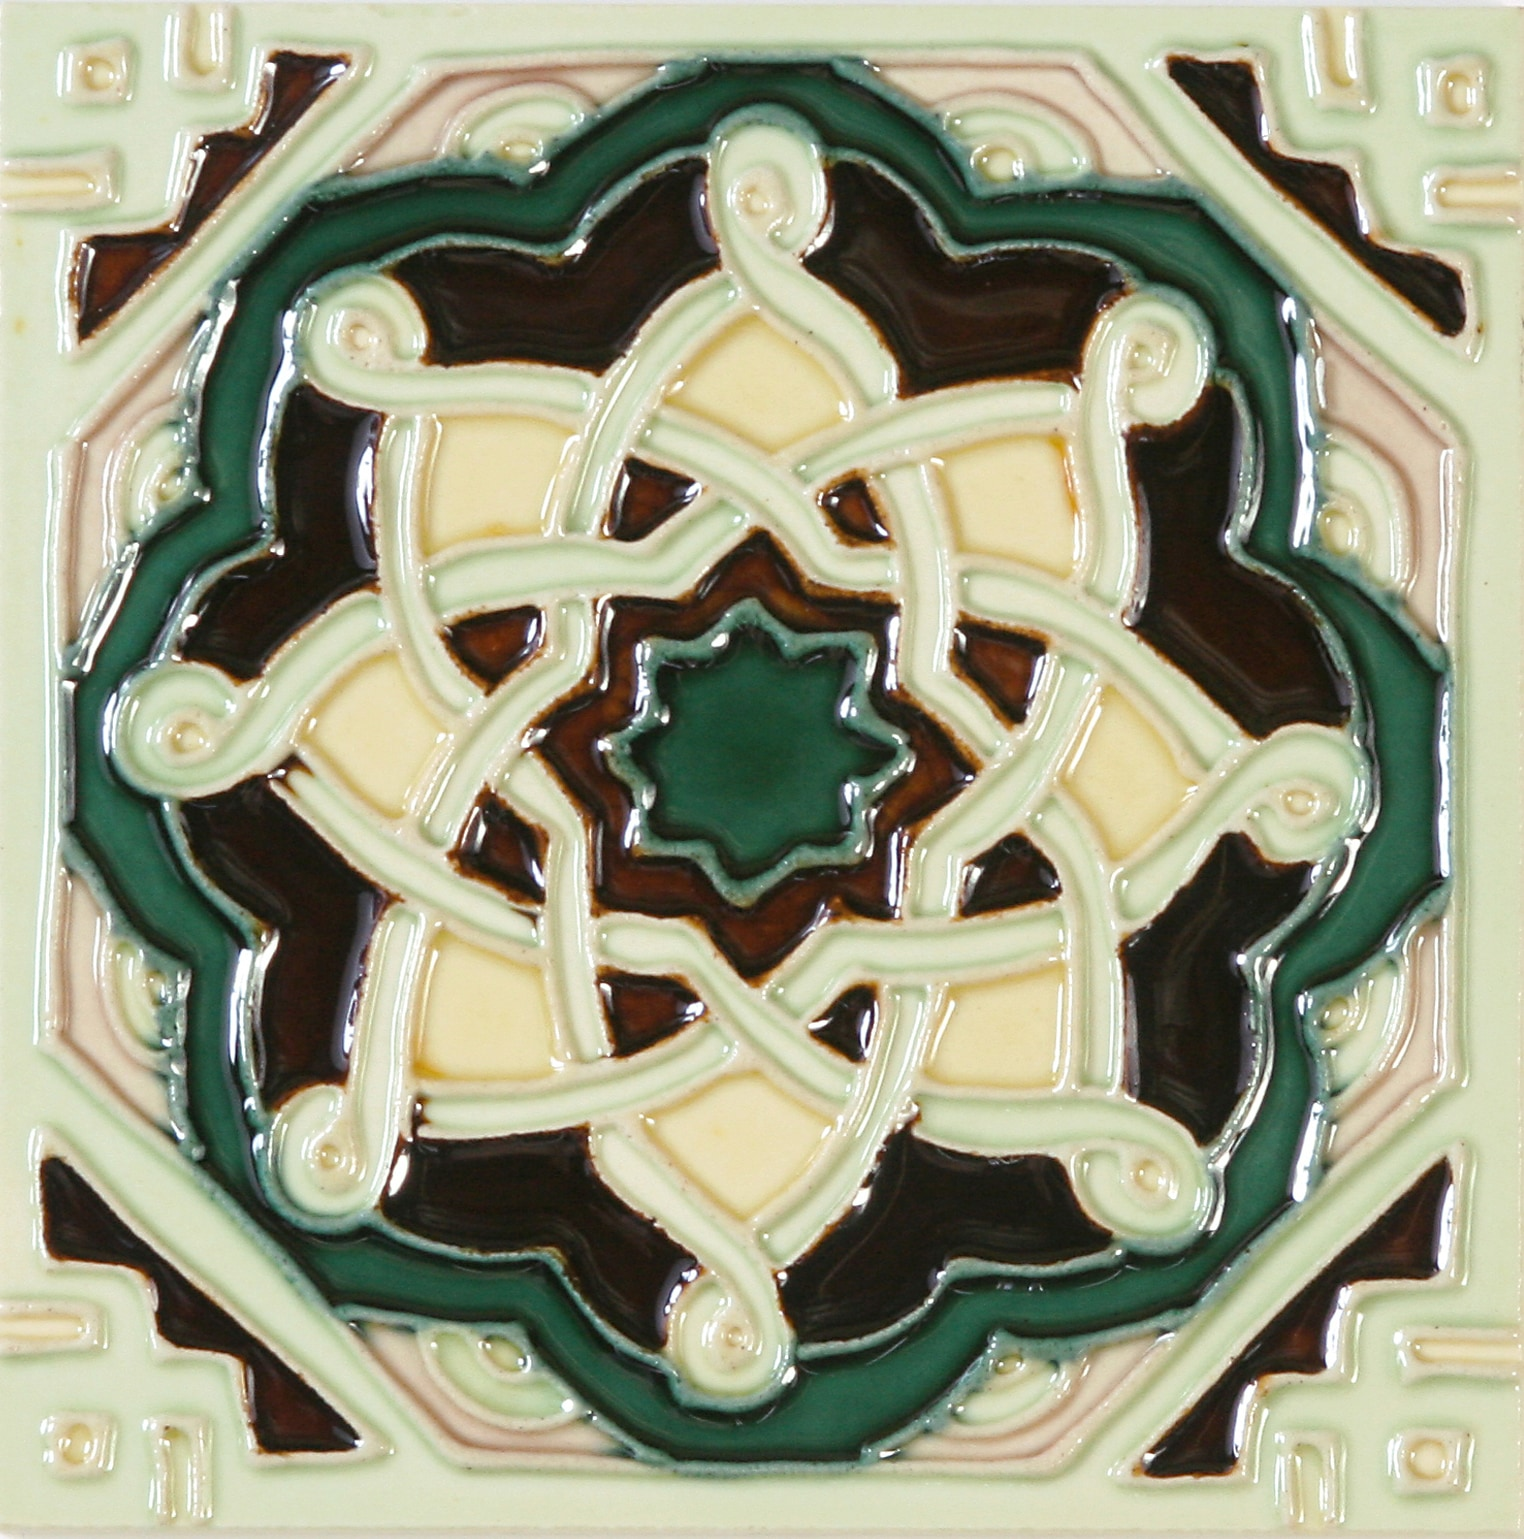 Hand-Painted Ceramic Glazed Wall Tile in Laberinto Hand-Painted Ceramic Glazed Wall Tile in Laberinto 0